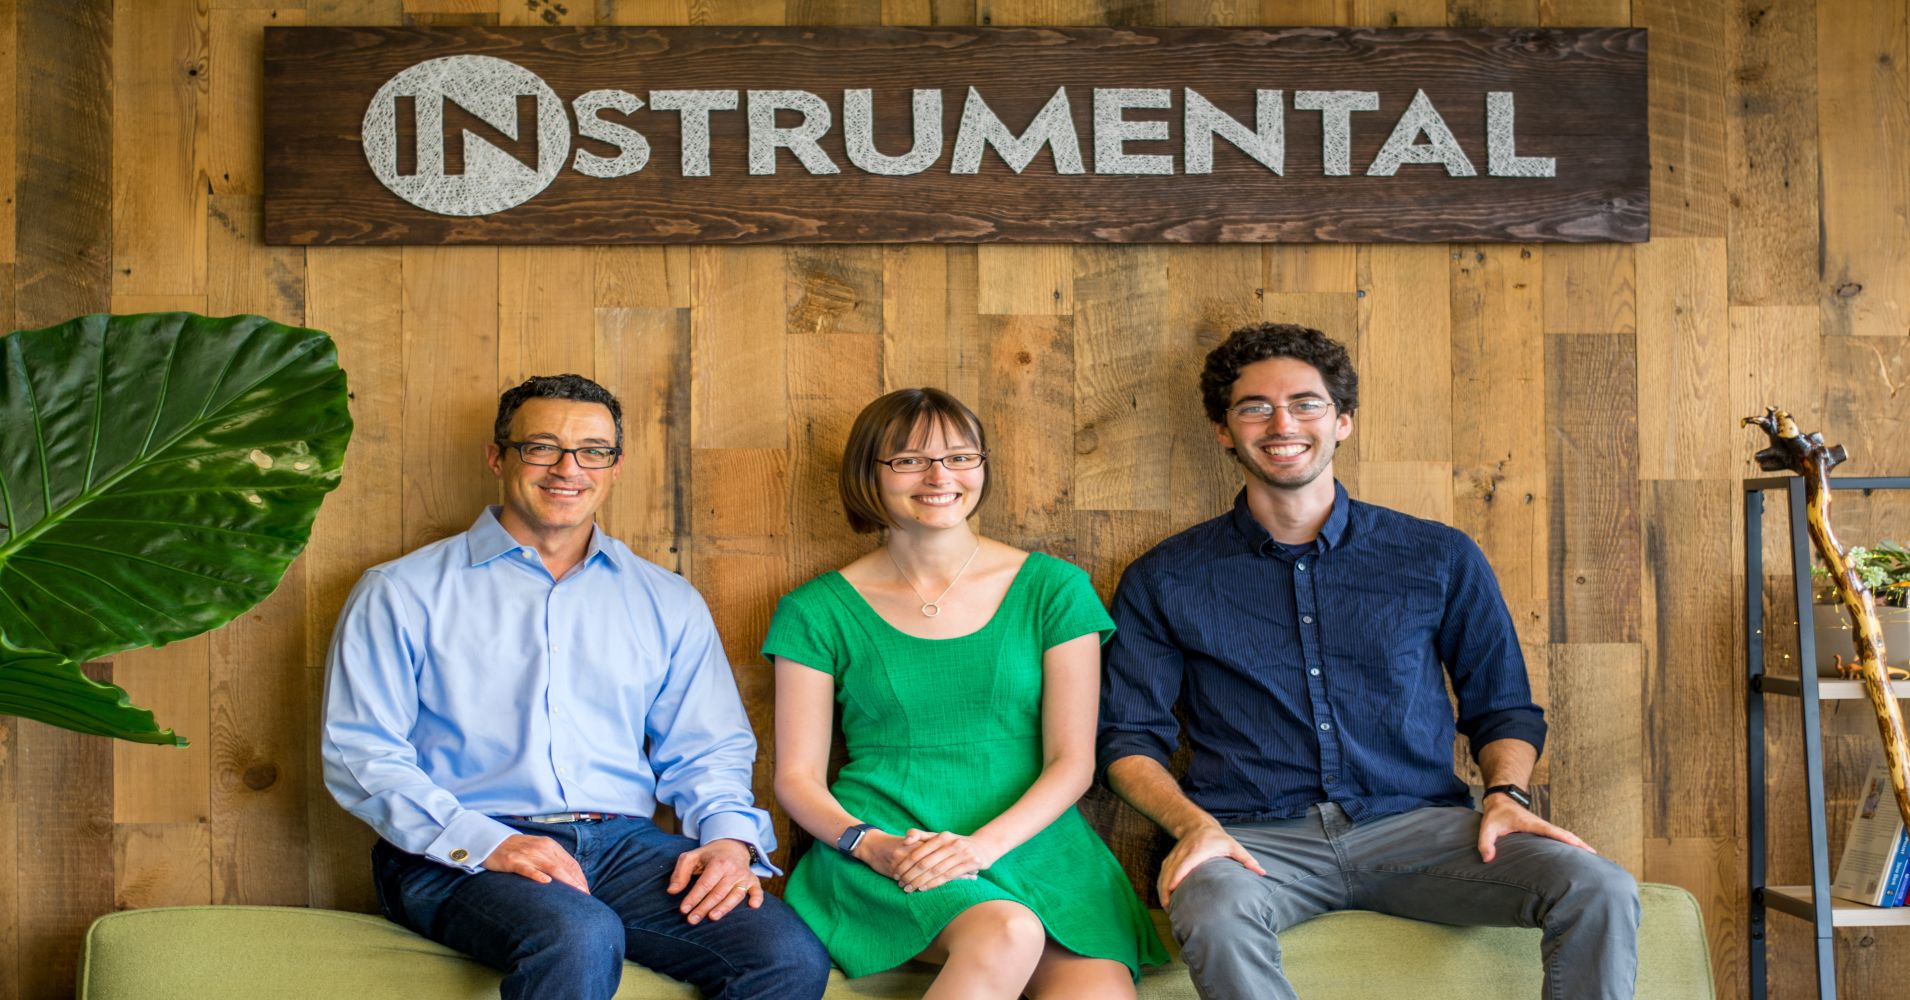 Instrumental COO Keith Lucas, CEO Anna Shedletsky and CTO Sam Weiss